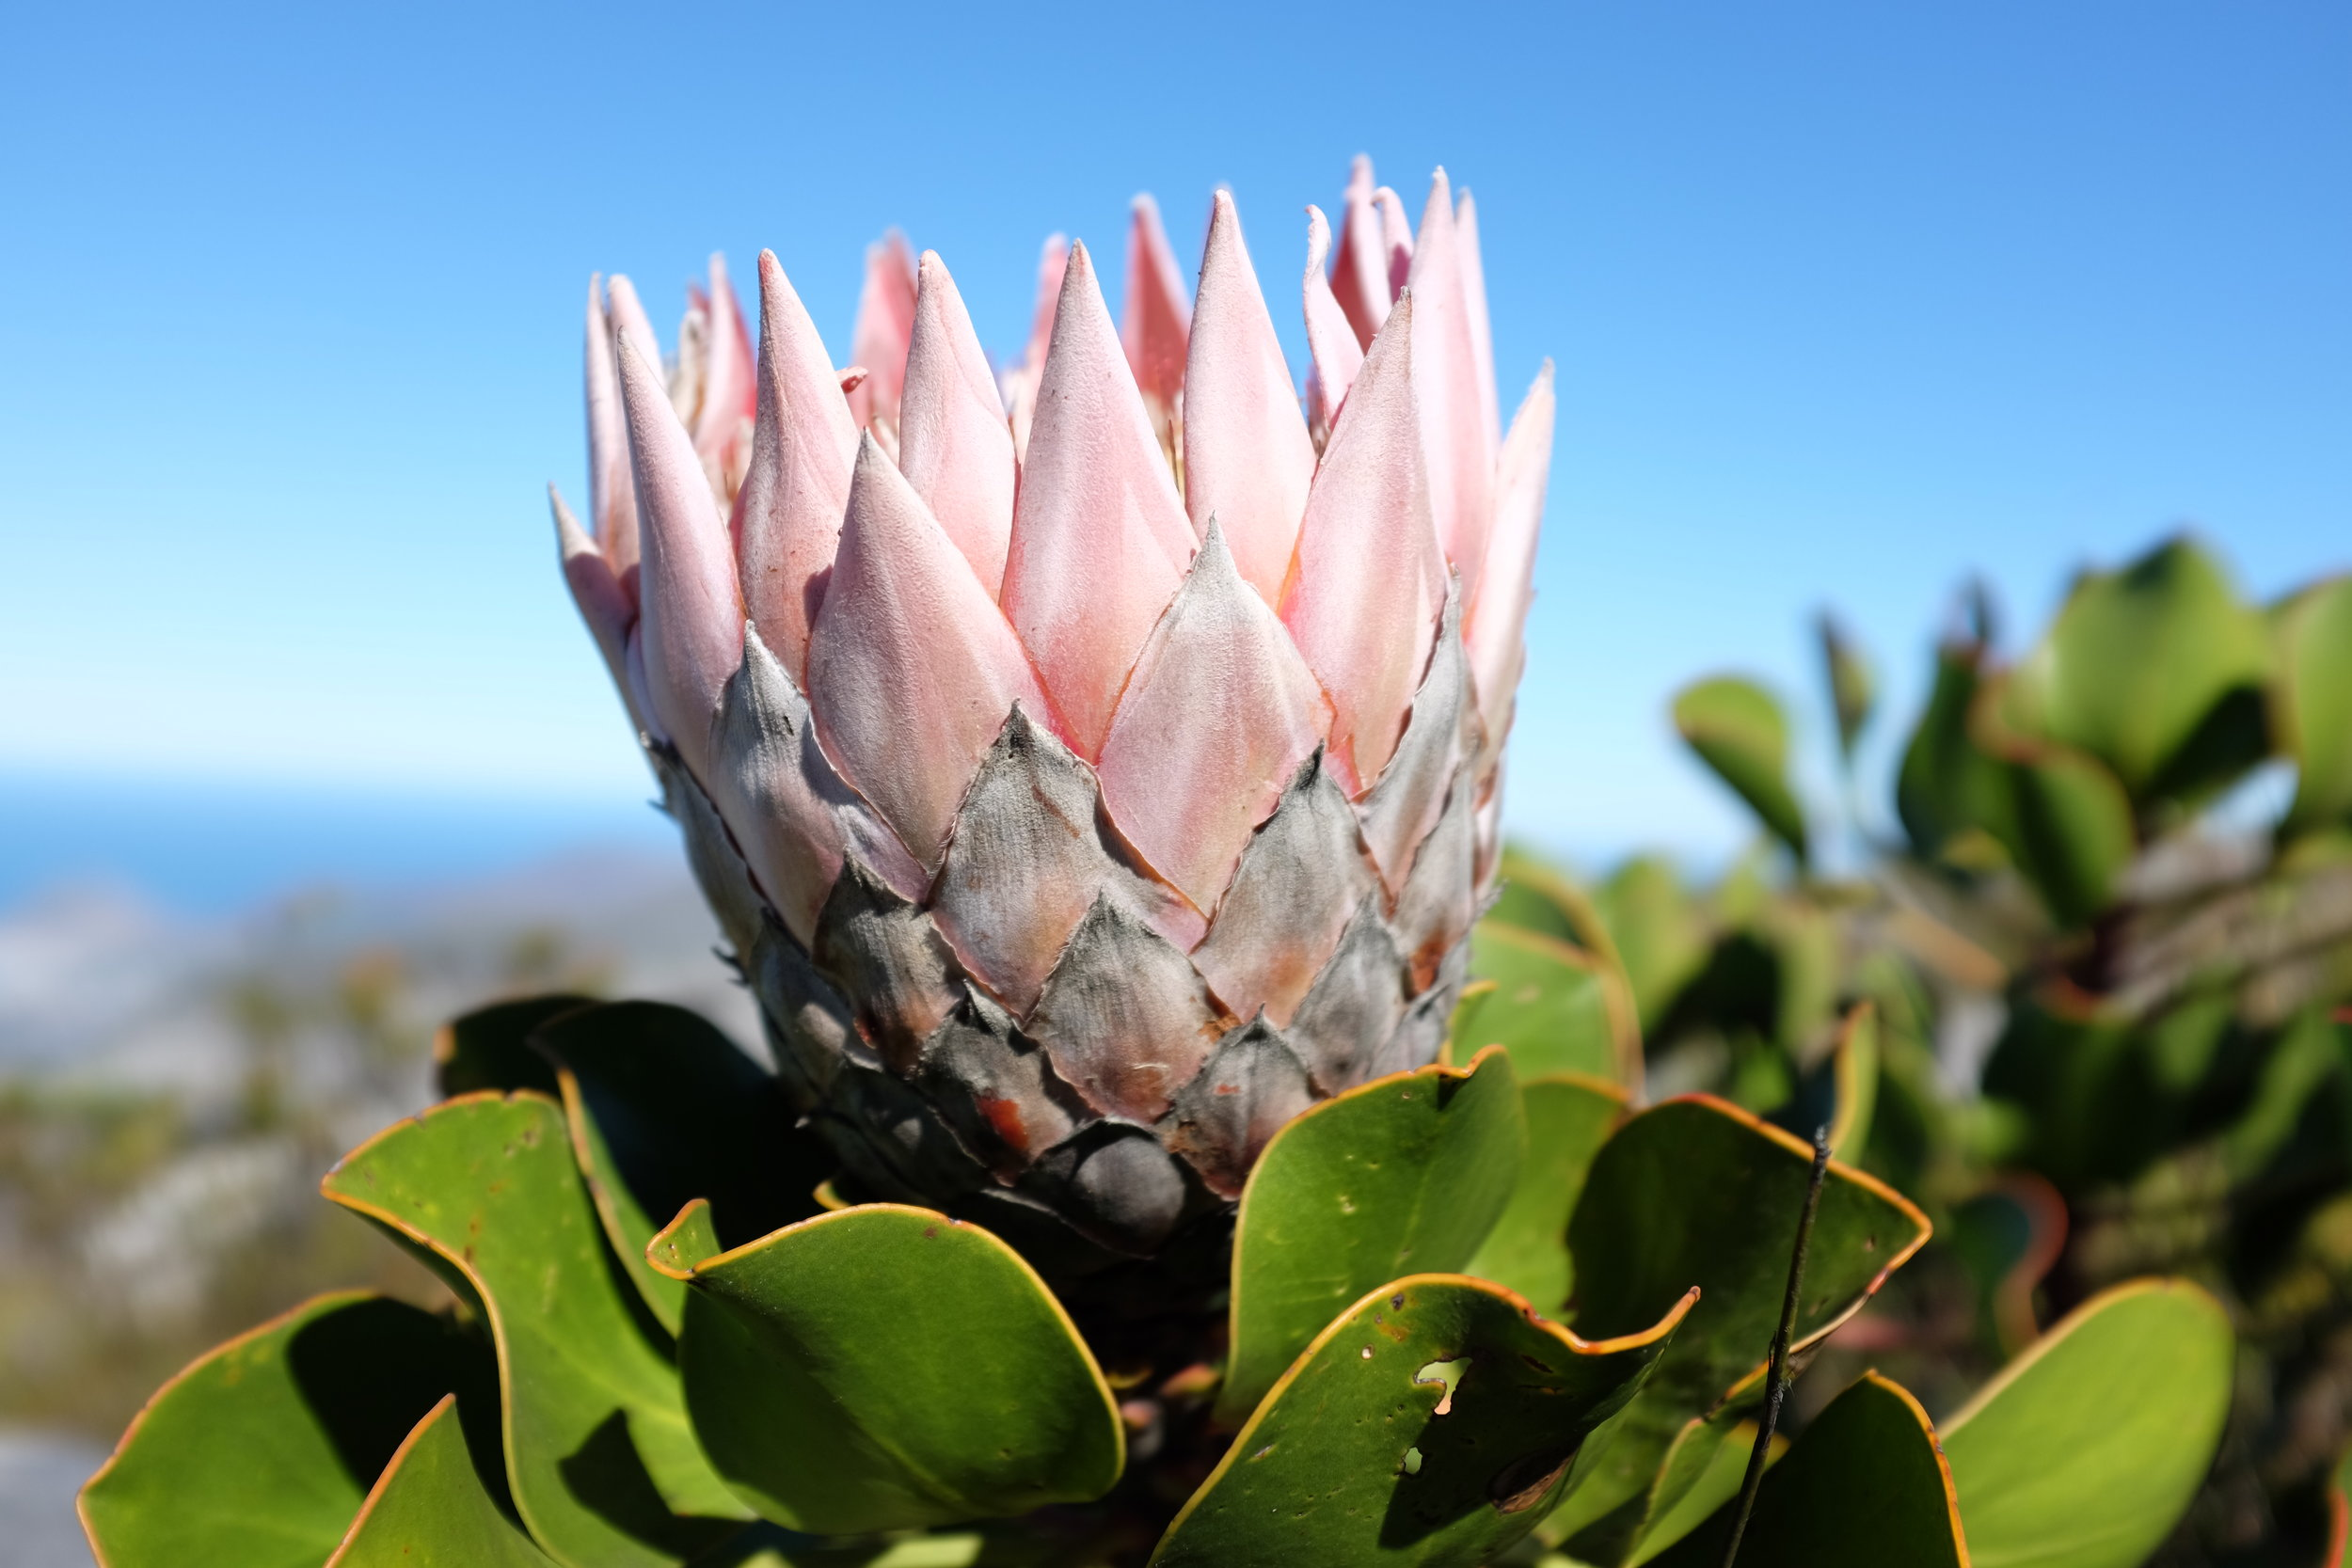 Found some Protea, the national flower of South Africa, on Table Mountain. The giant variety kind of looks like half a pineapple from the side.